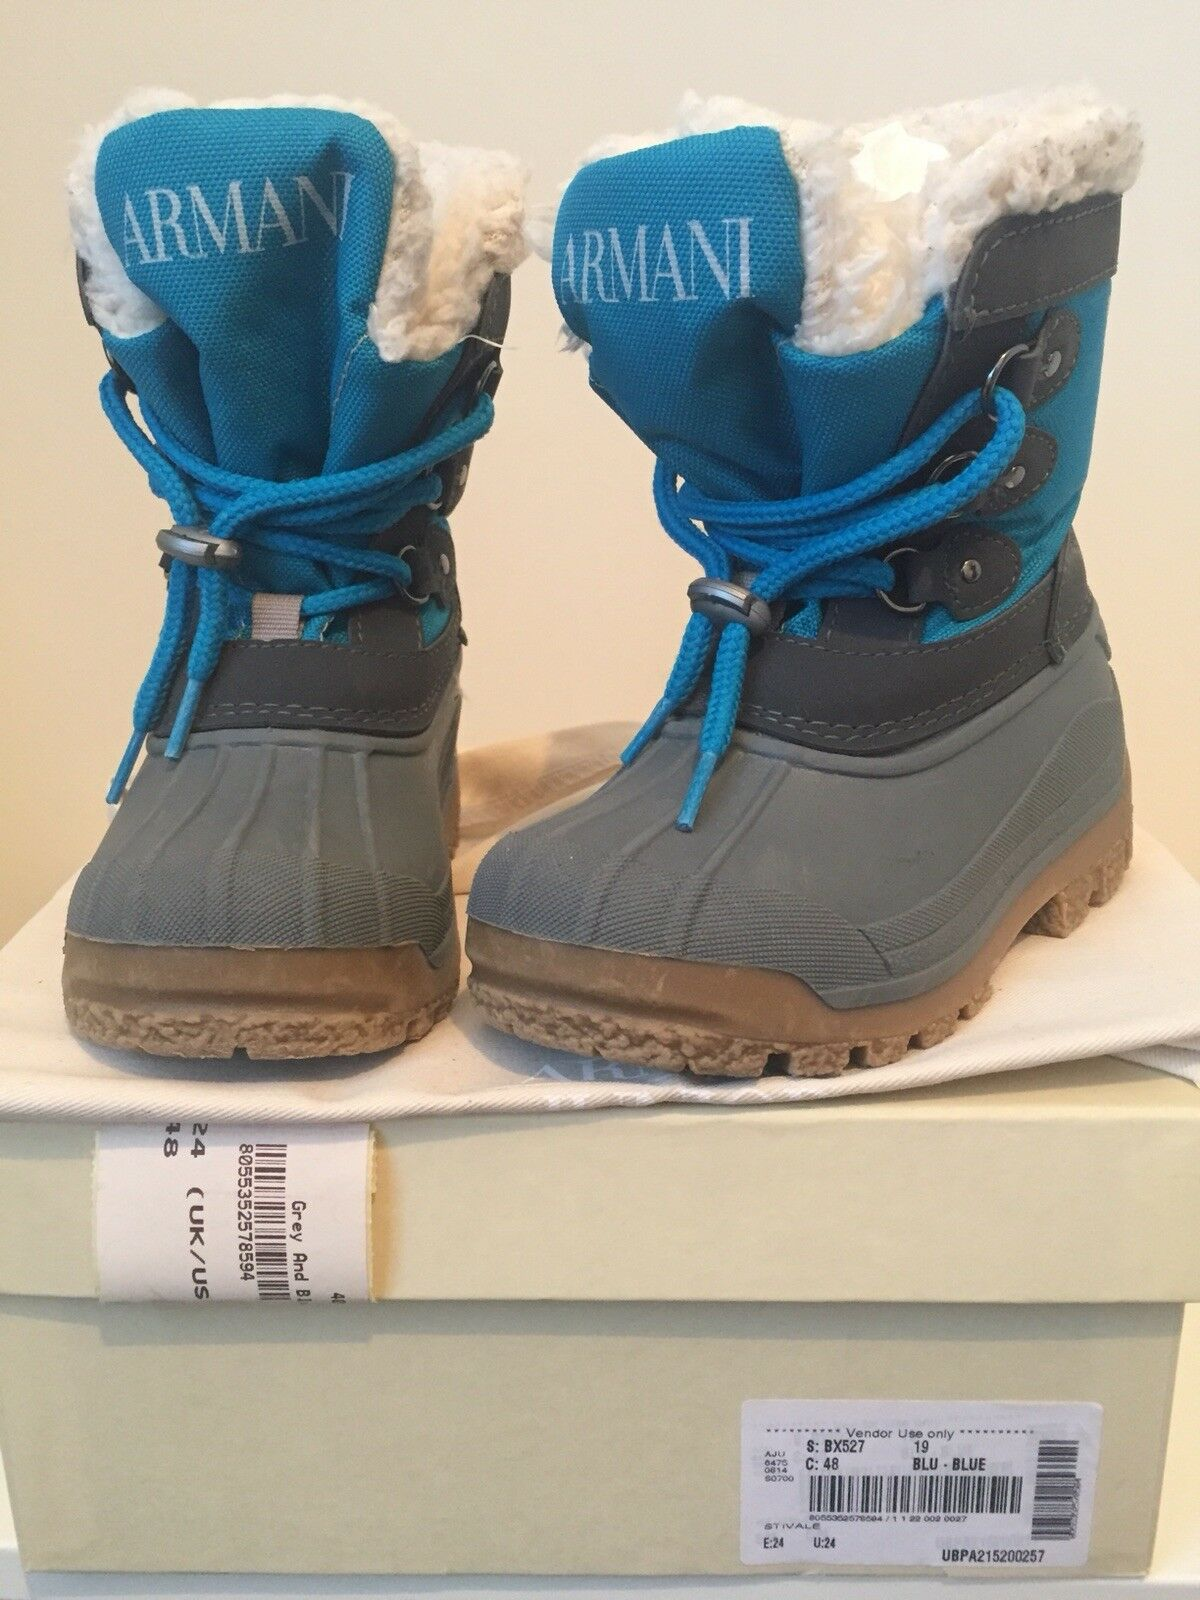 Armani Junior Stiefel Ski 23 24